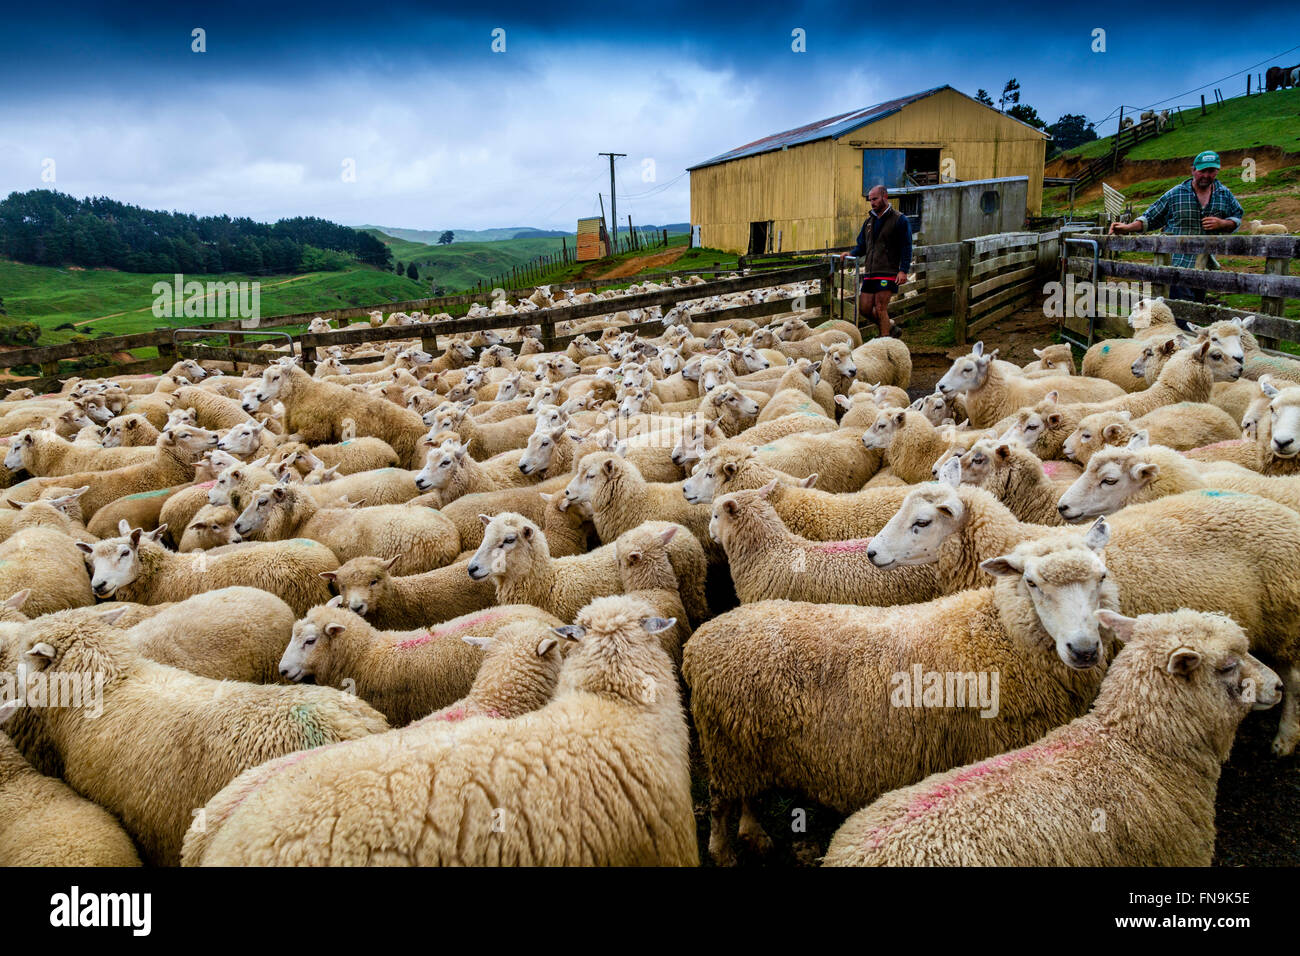 Sheep In A Pen Waiting To Be Sheared, Sheep Farm, Pukekohe, New Zealand - Stock Image